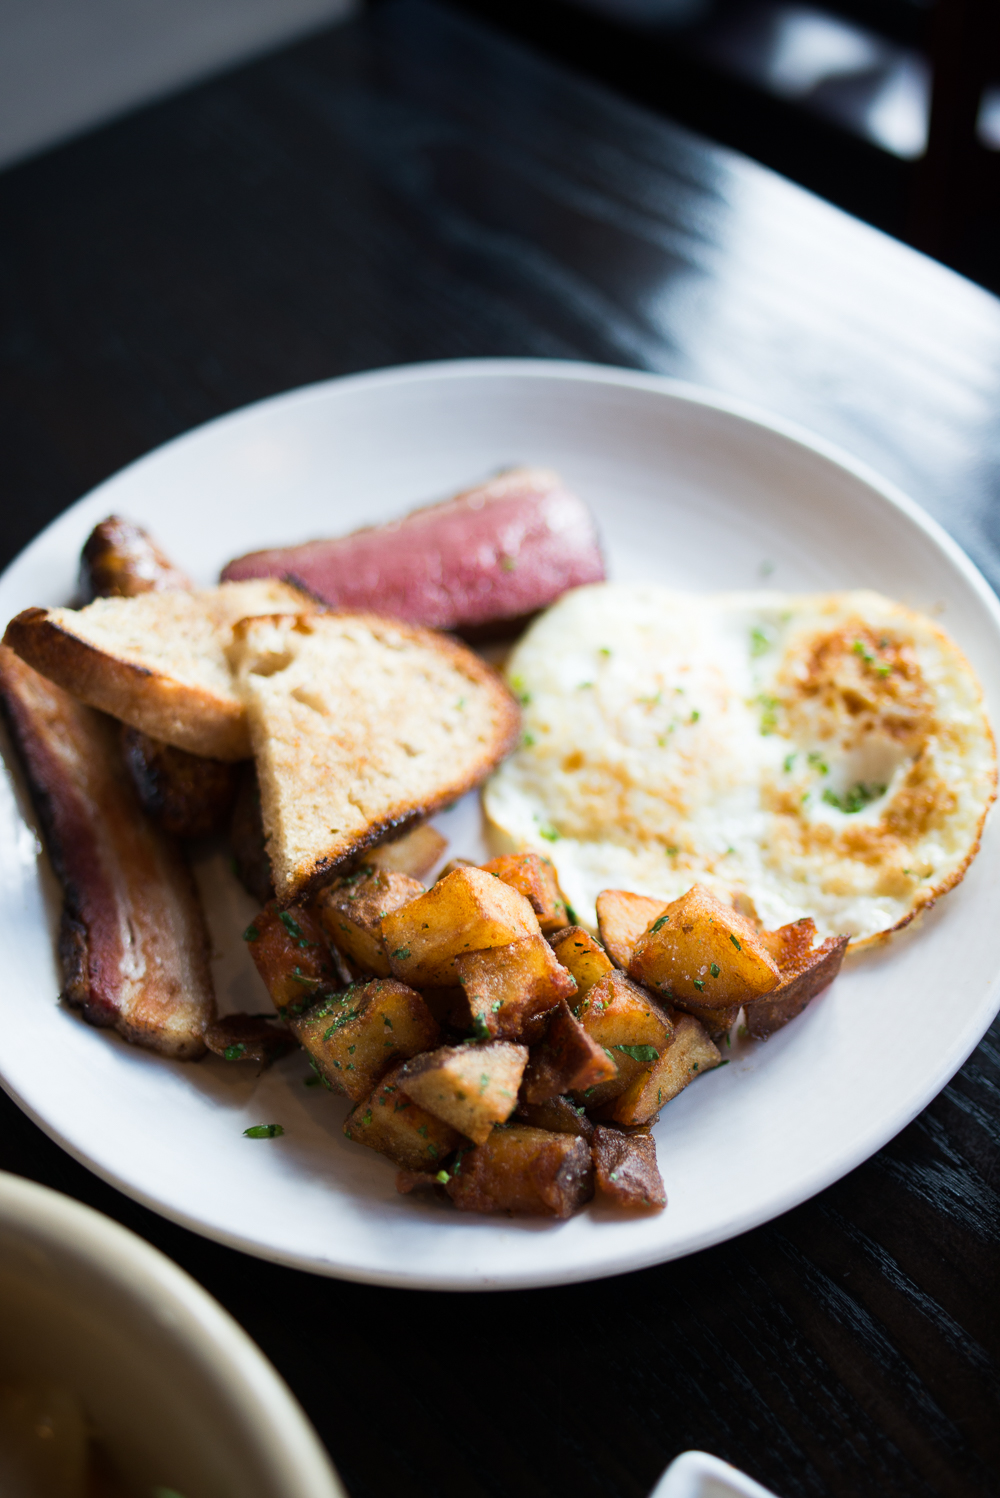 H&R Breakfast - Eggs, Merguez Sausage, Wagyu Pastrami, Bacon, Home Fries, Toast